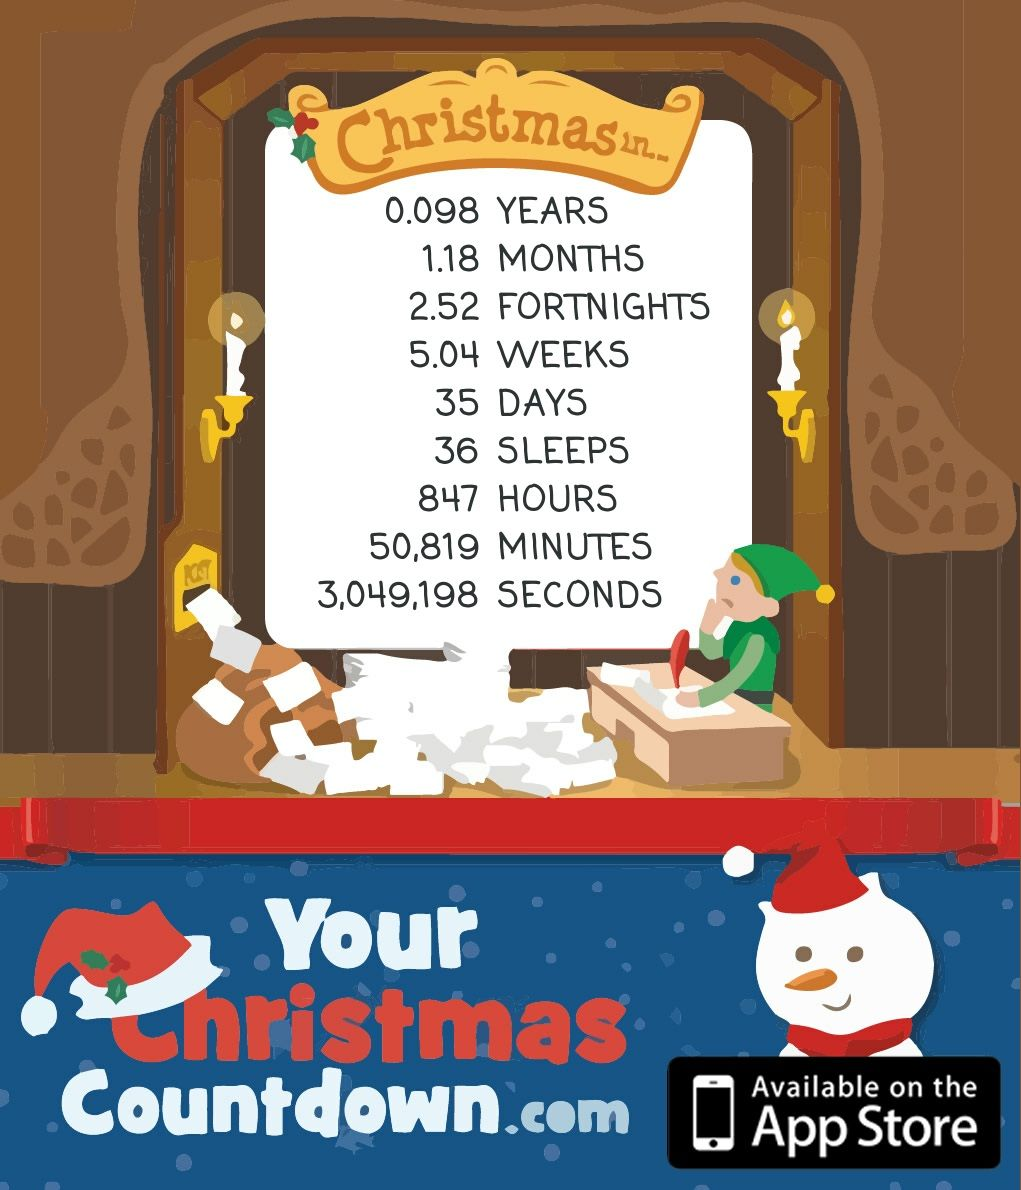 YOUR CHRISTMAS COUNTDOWN - Counting down the days until Christmas ...